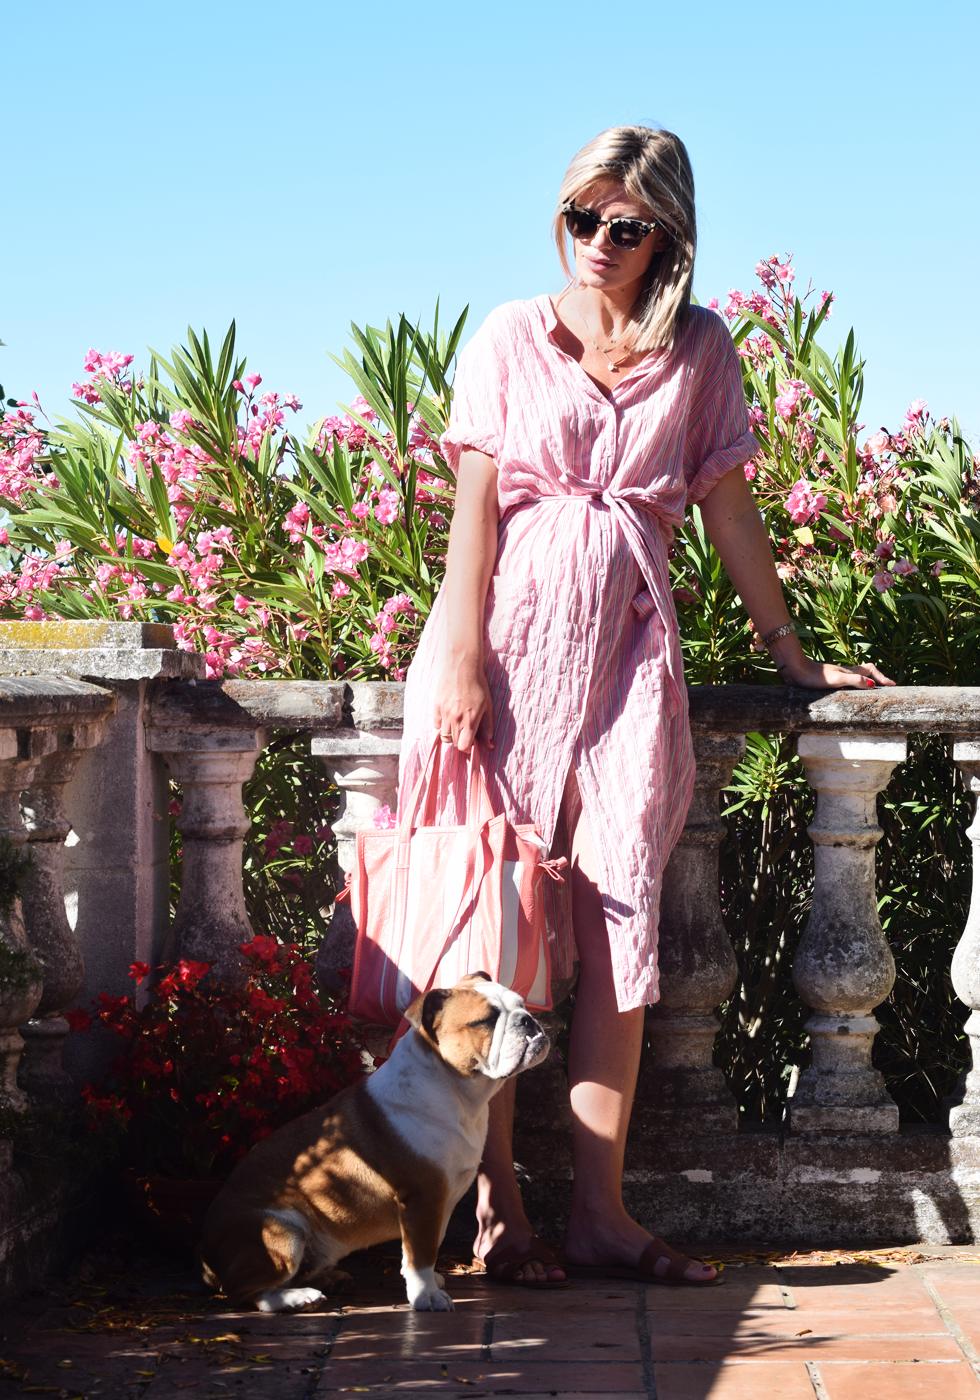 Outfit of the day, Gucci, Dewolf, Xirena, Hermès, Tiffany Co, Anne Zellien, Minitials, Balenciaga, ootd, style, fashion, blogger, maternity, bump, dressing, summer, pregancy